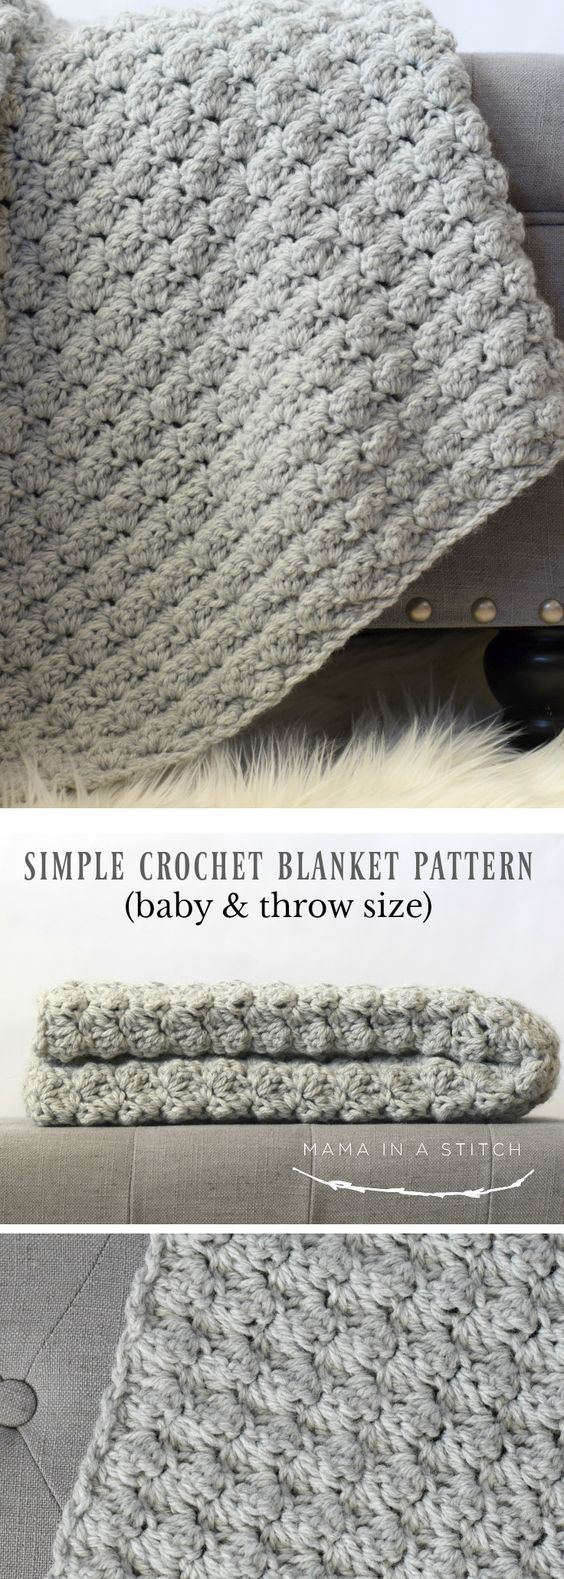 Simple crochet blanket for adults